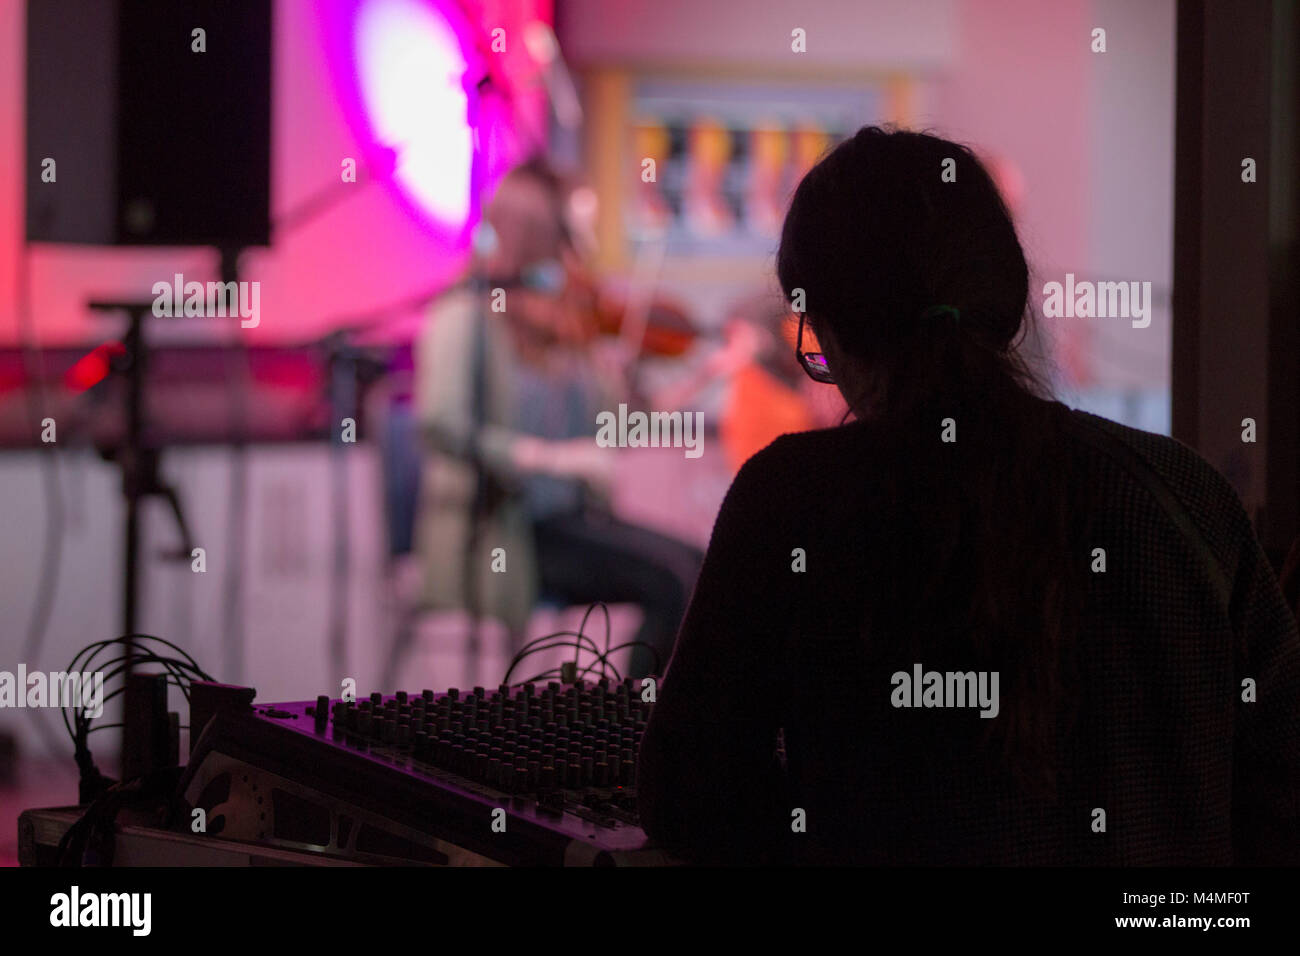 recording technicians at mixing desk during concert - Stock Image